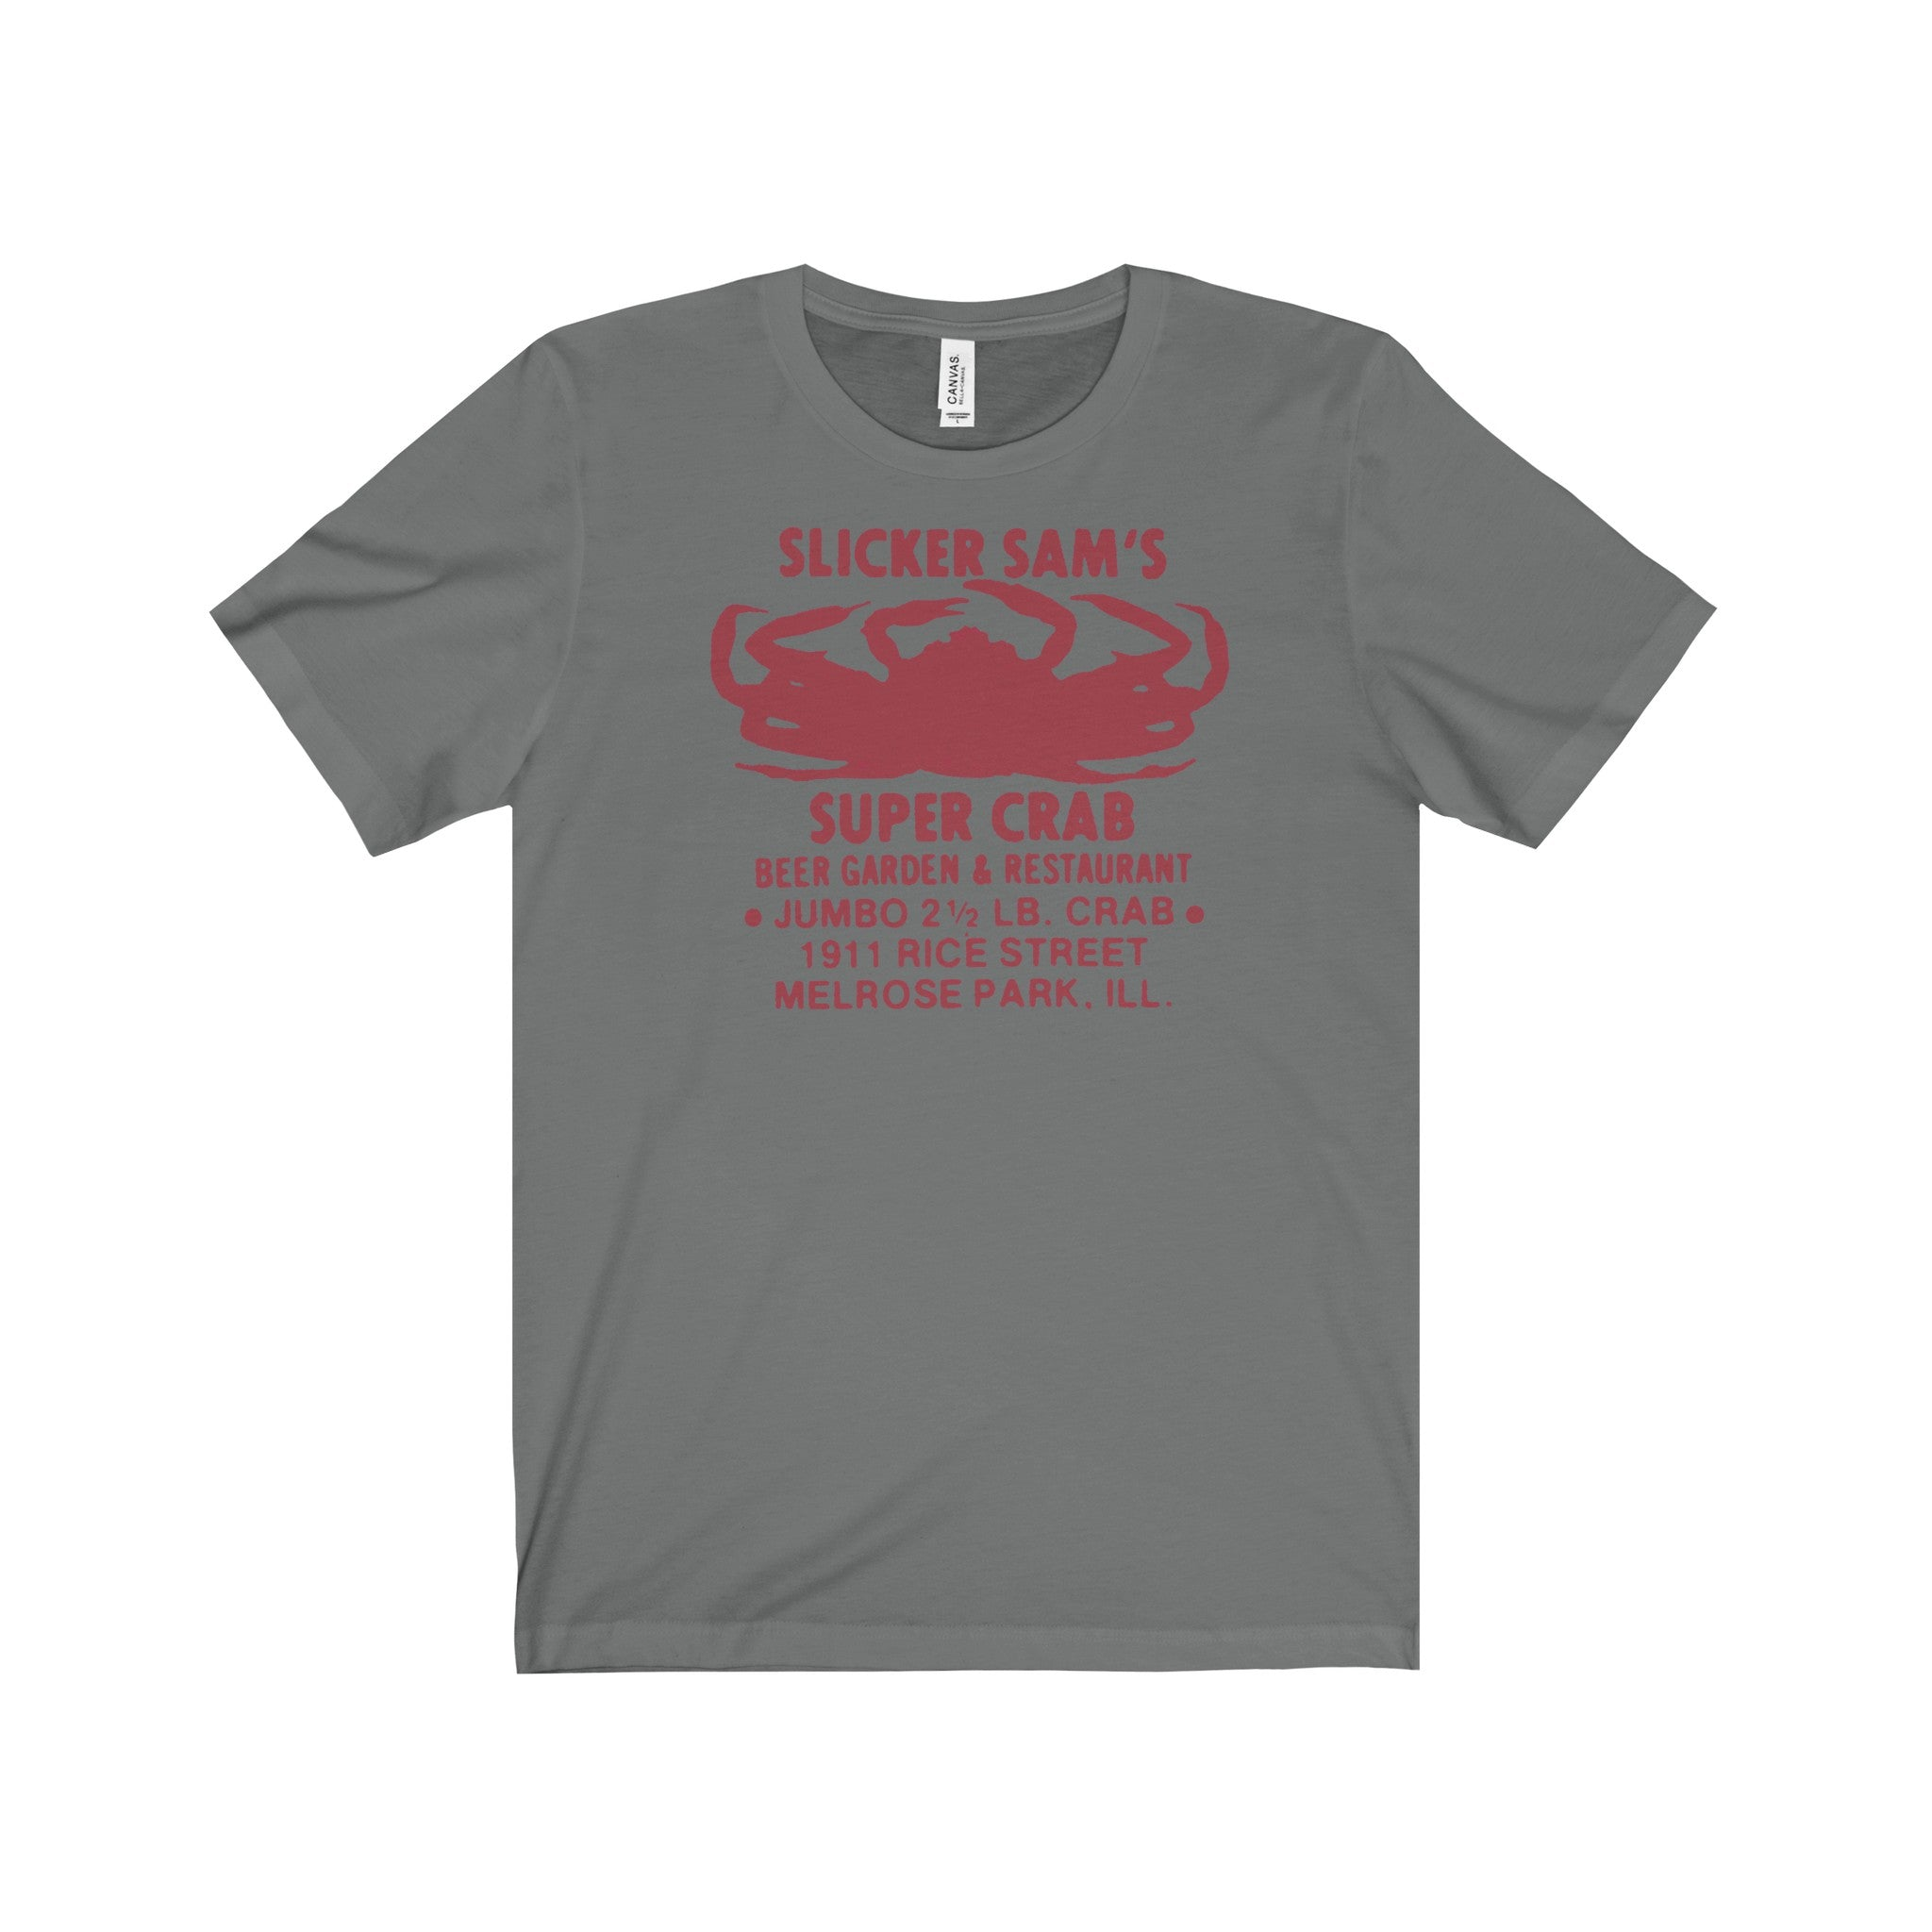 Sliker Sam's Super Crab Vintage T-Shirt